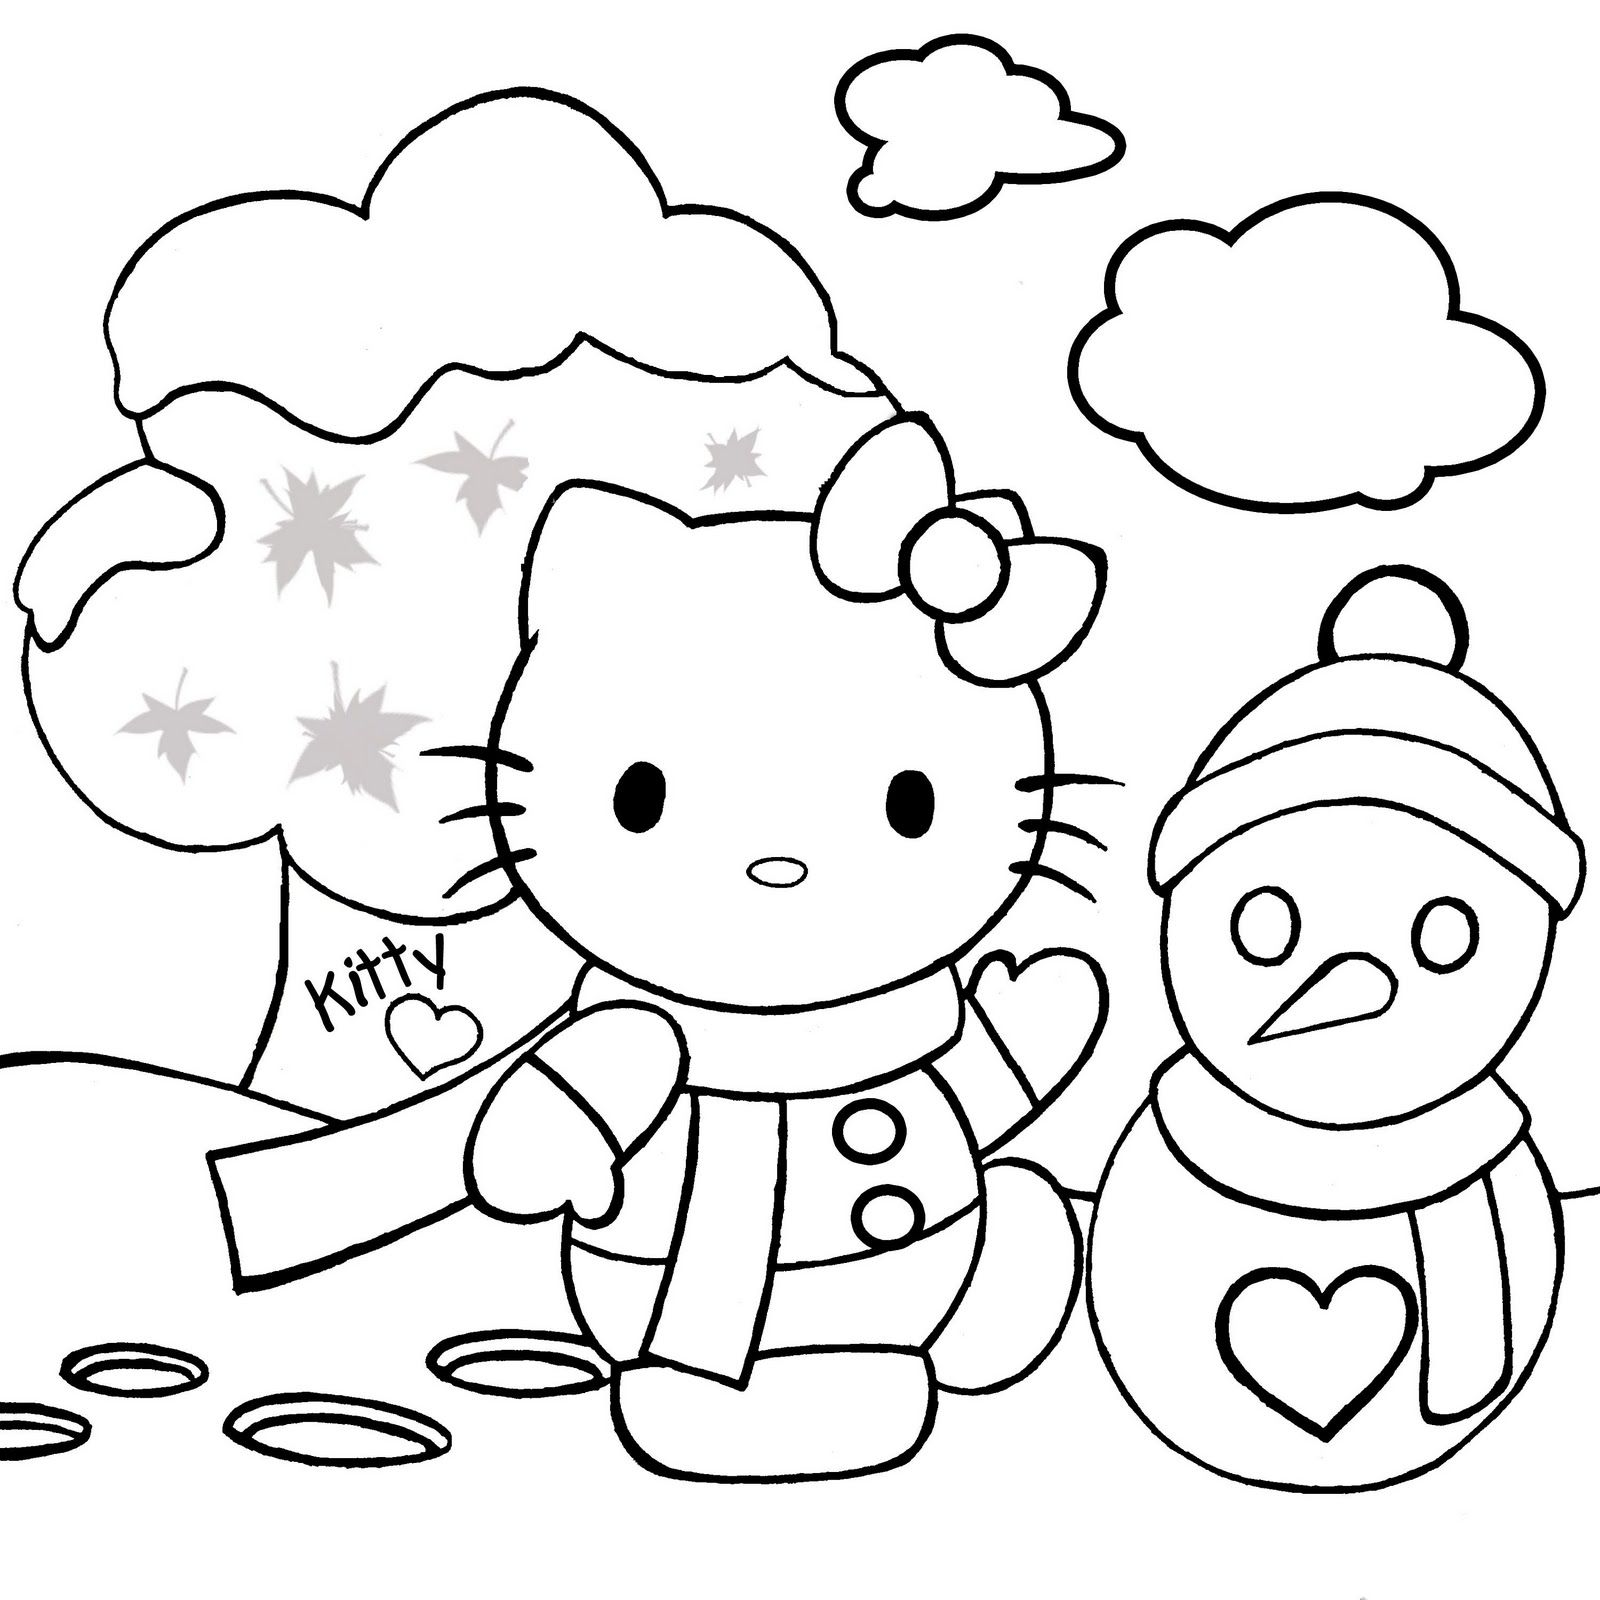 christmas coloring pages hello kitty hello kitty christmas coloring page christmas pinterest coloring hello pages christmas kitty